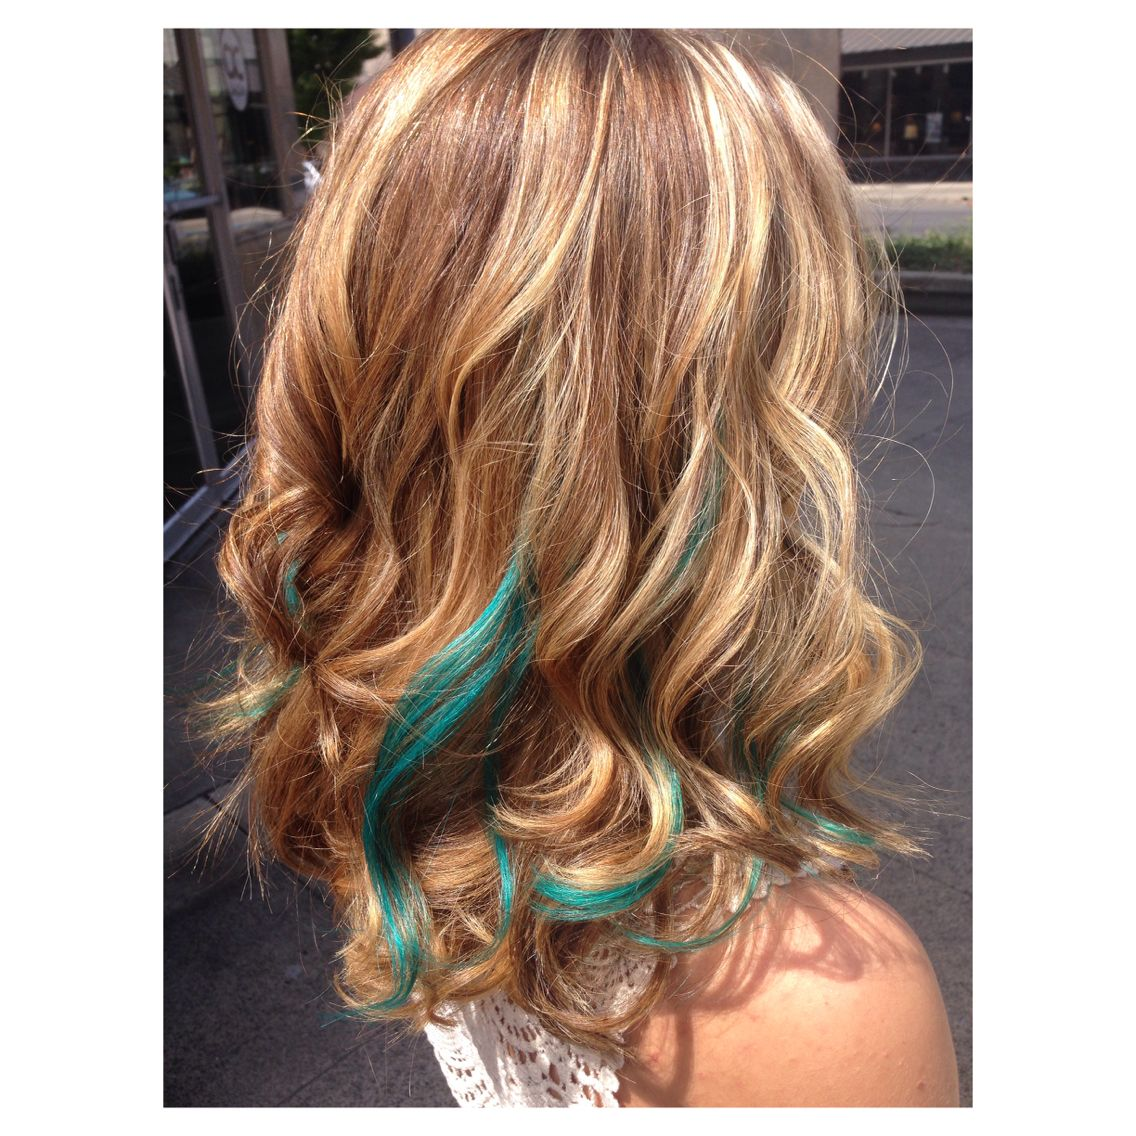 Blonde Highlights Medium Low Lights And Turquoise Streak Extensions Hair Streaks Blonde Hair Color Streaks Turquoise Hair